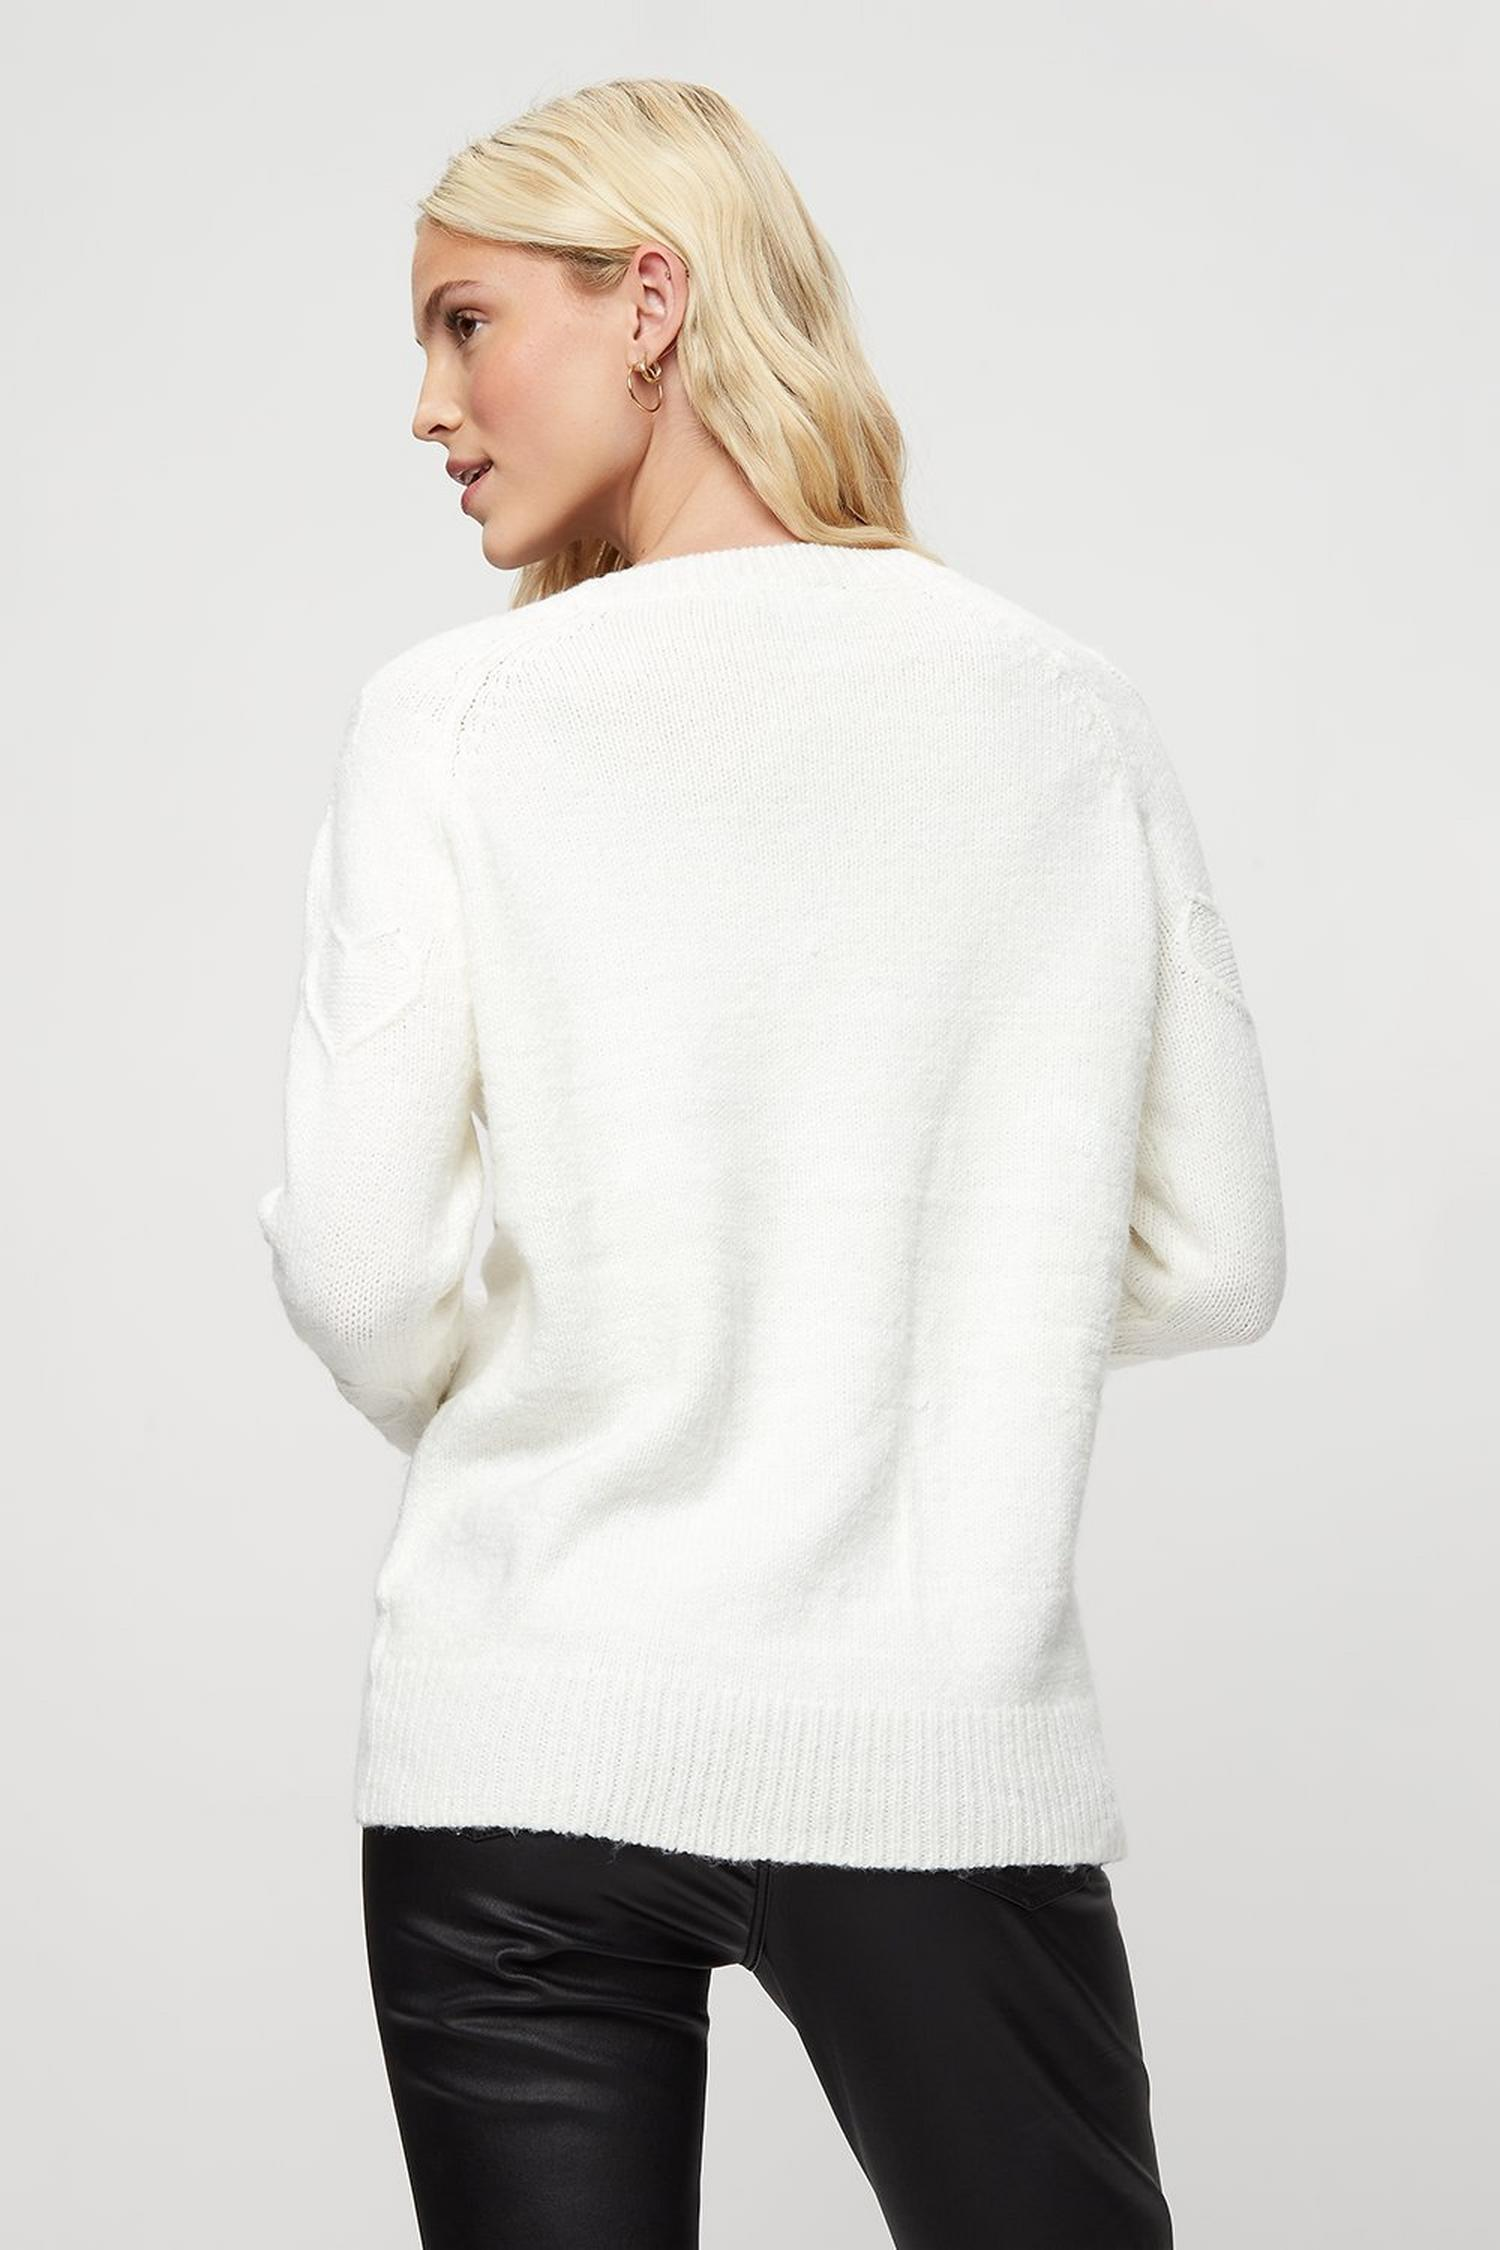 123 Ivory All Over Heart Jumper image number 3